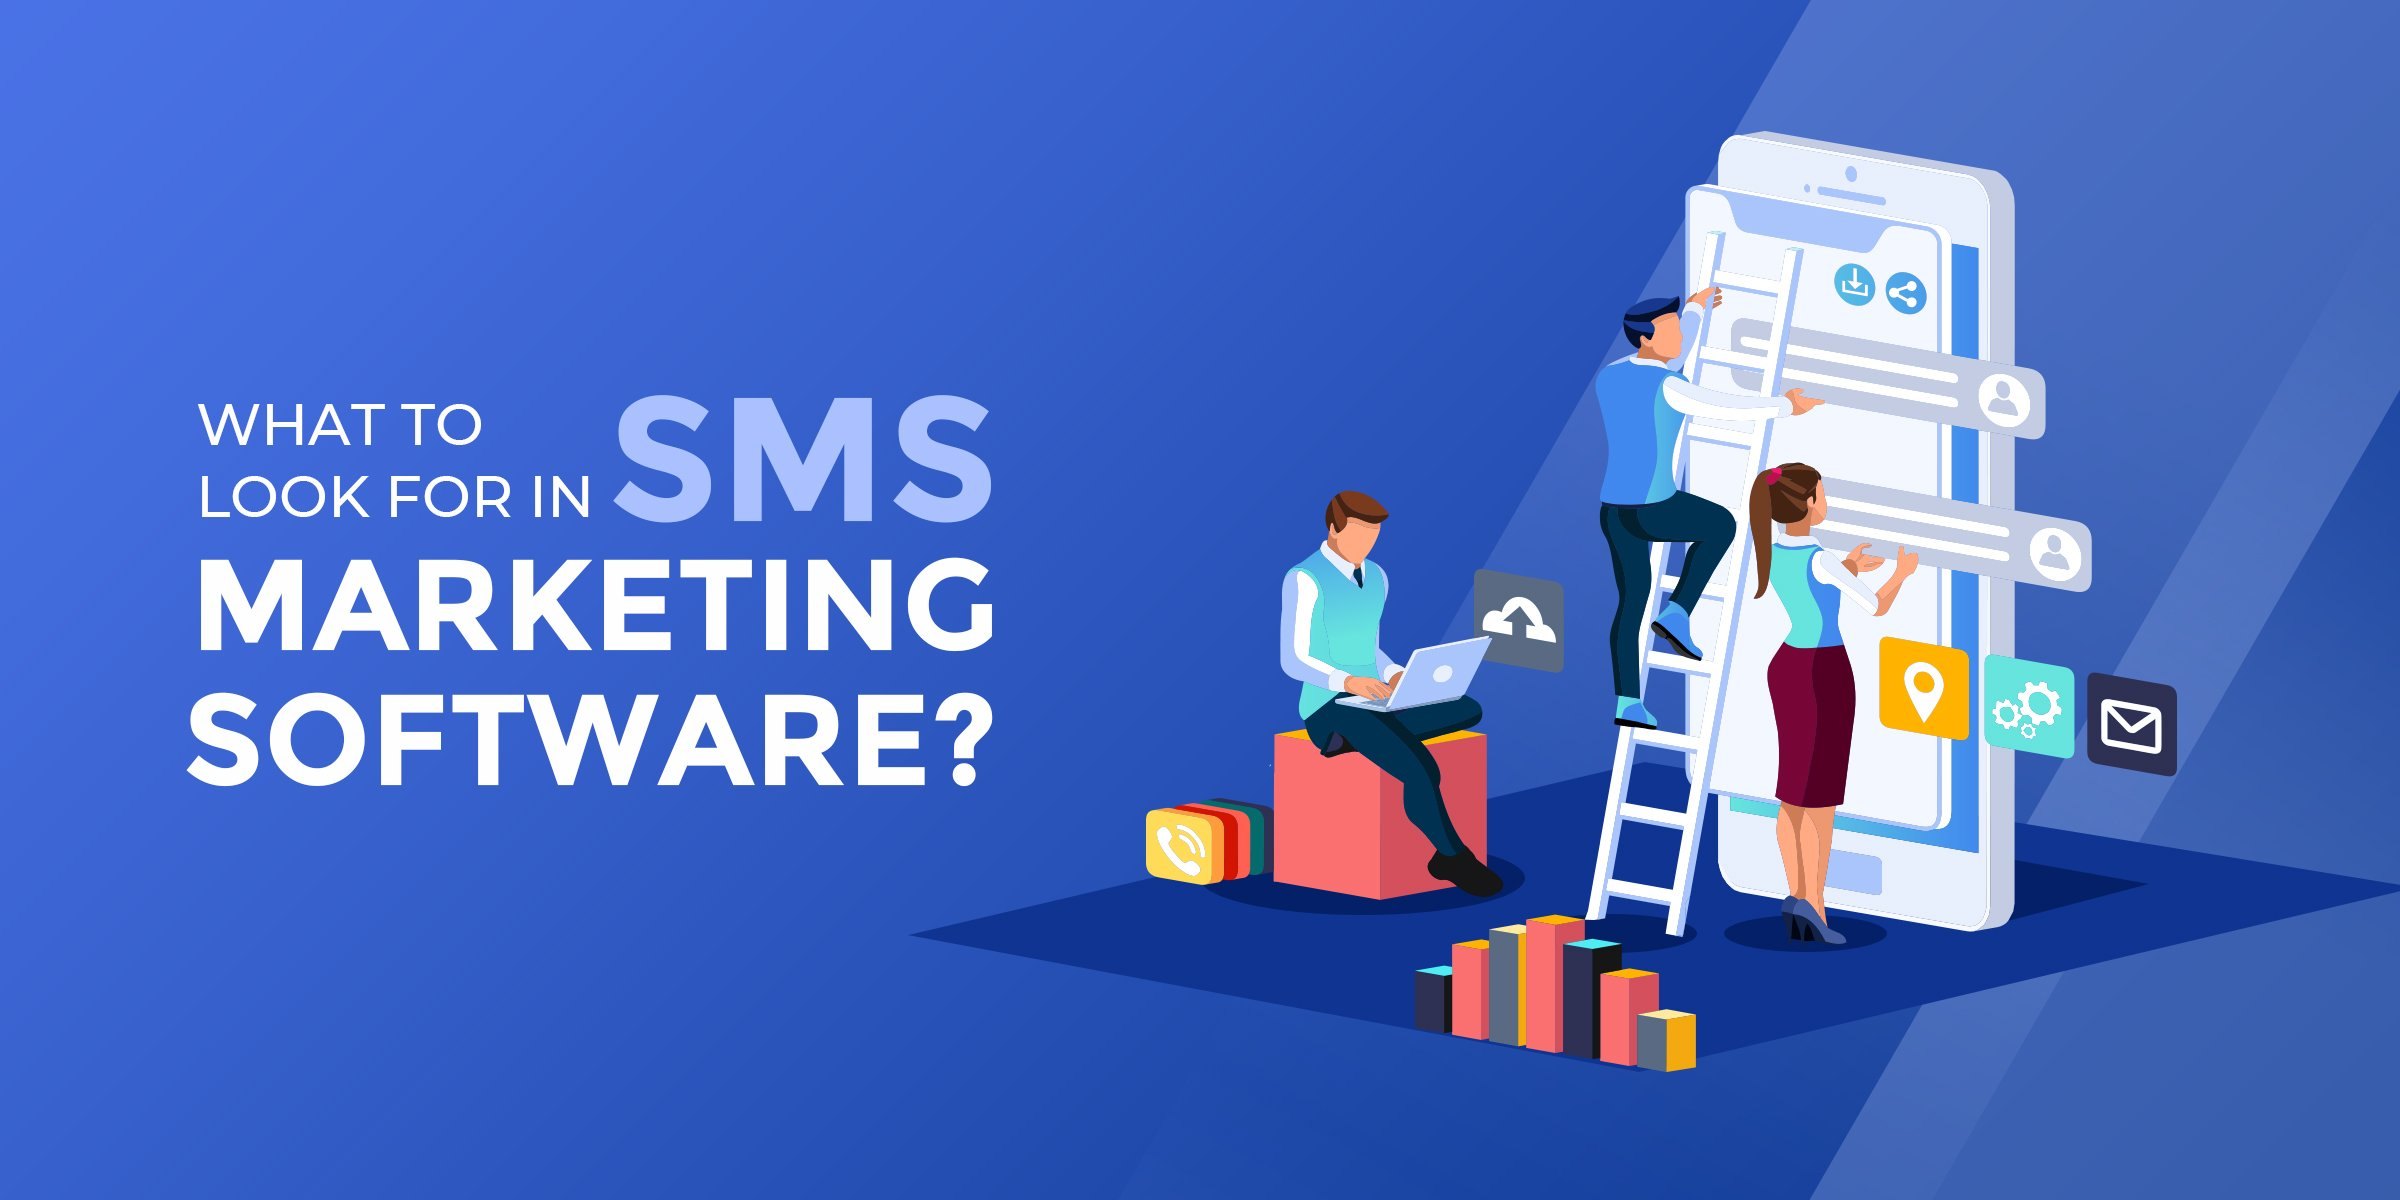 What to Look for in SMS Marketing Software